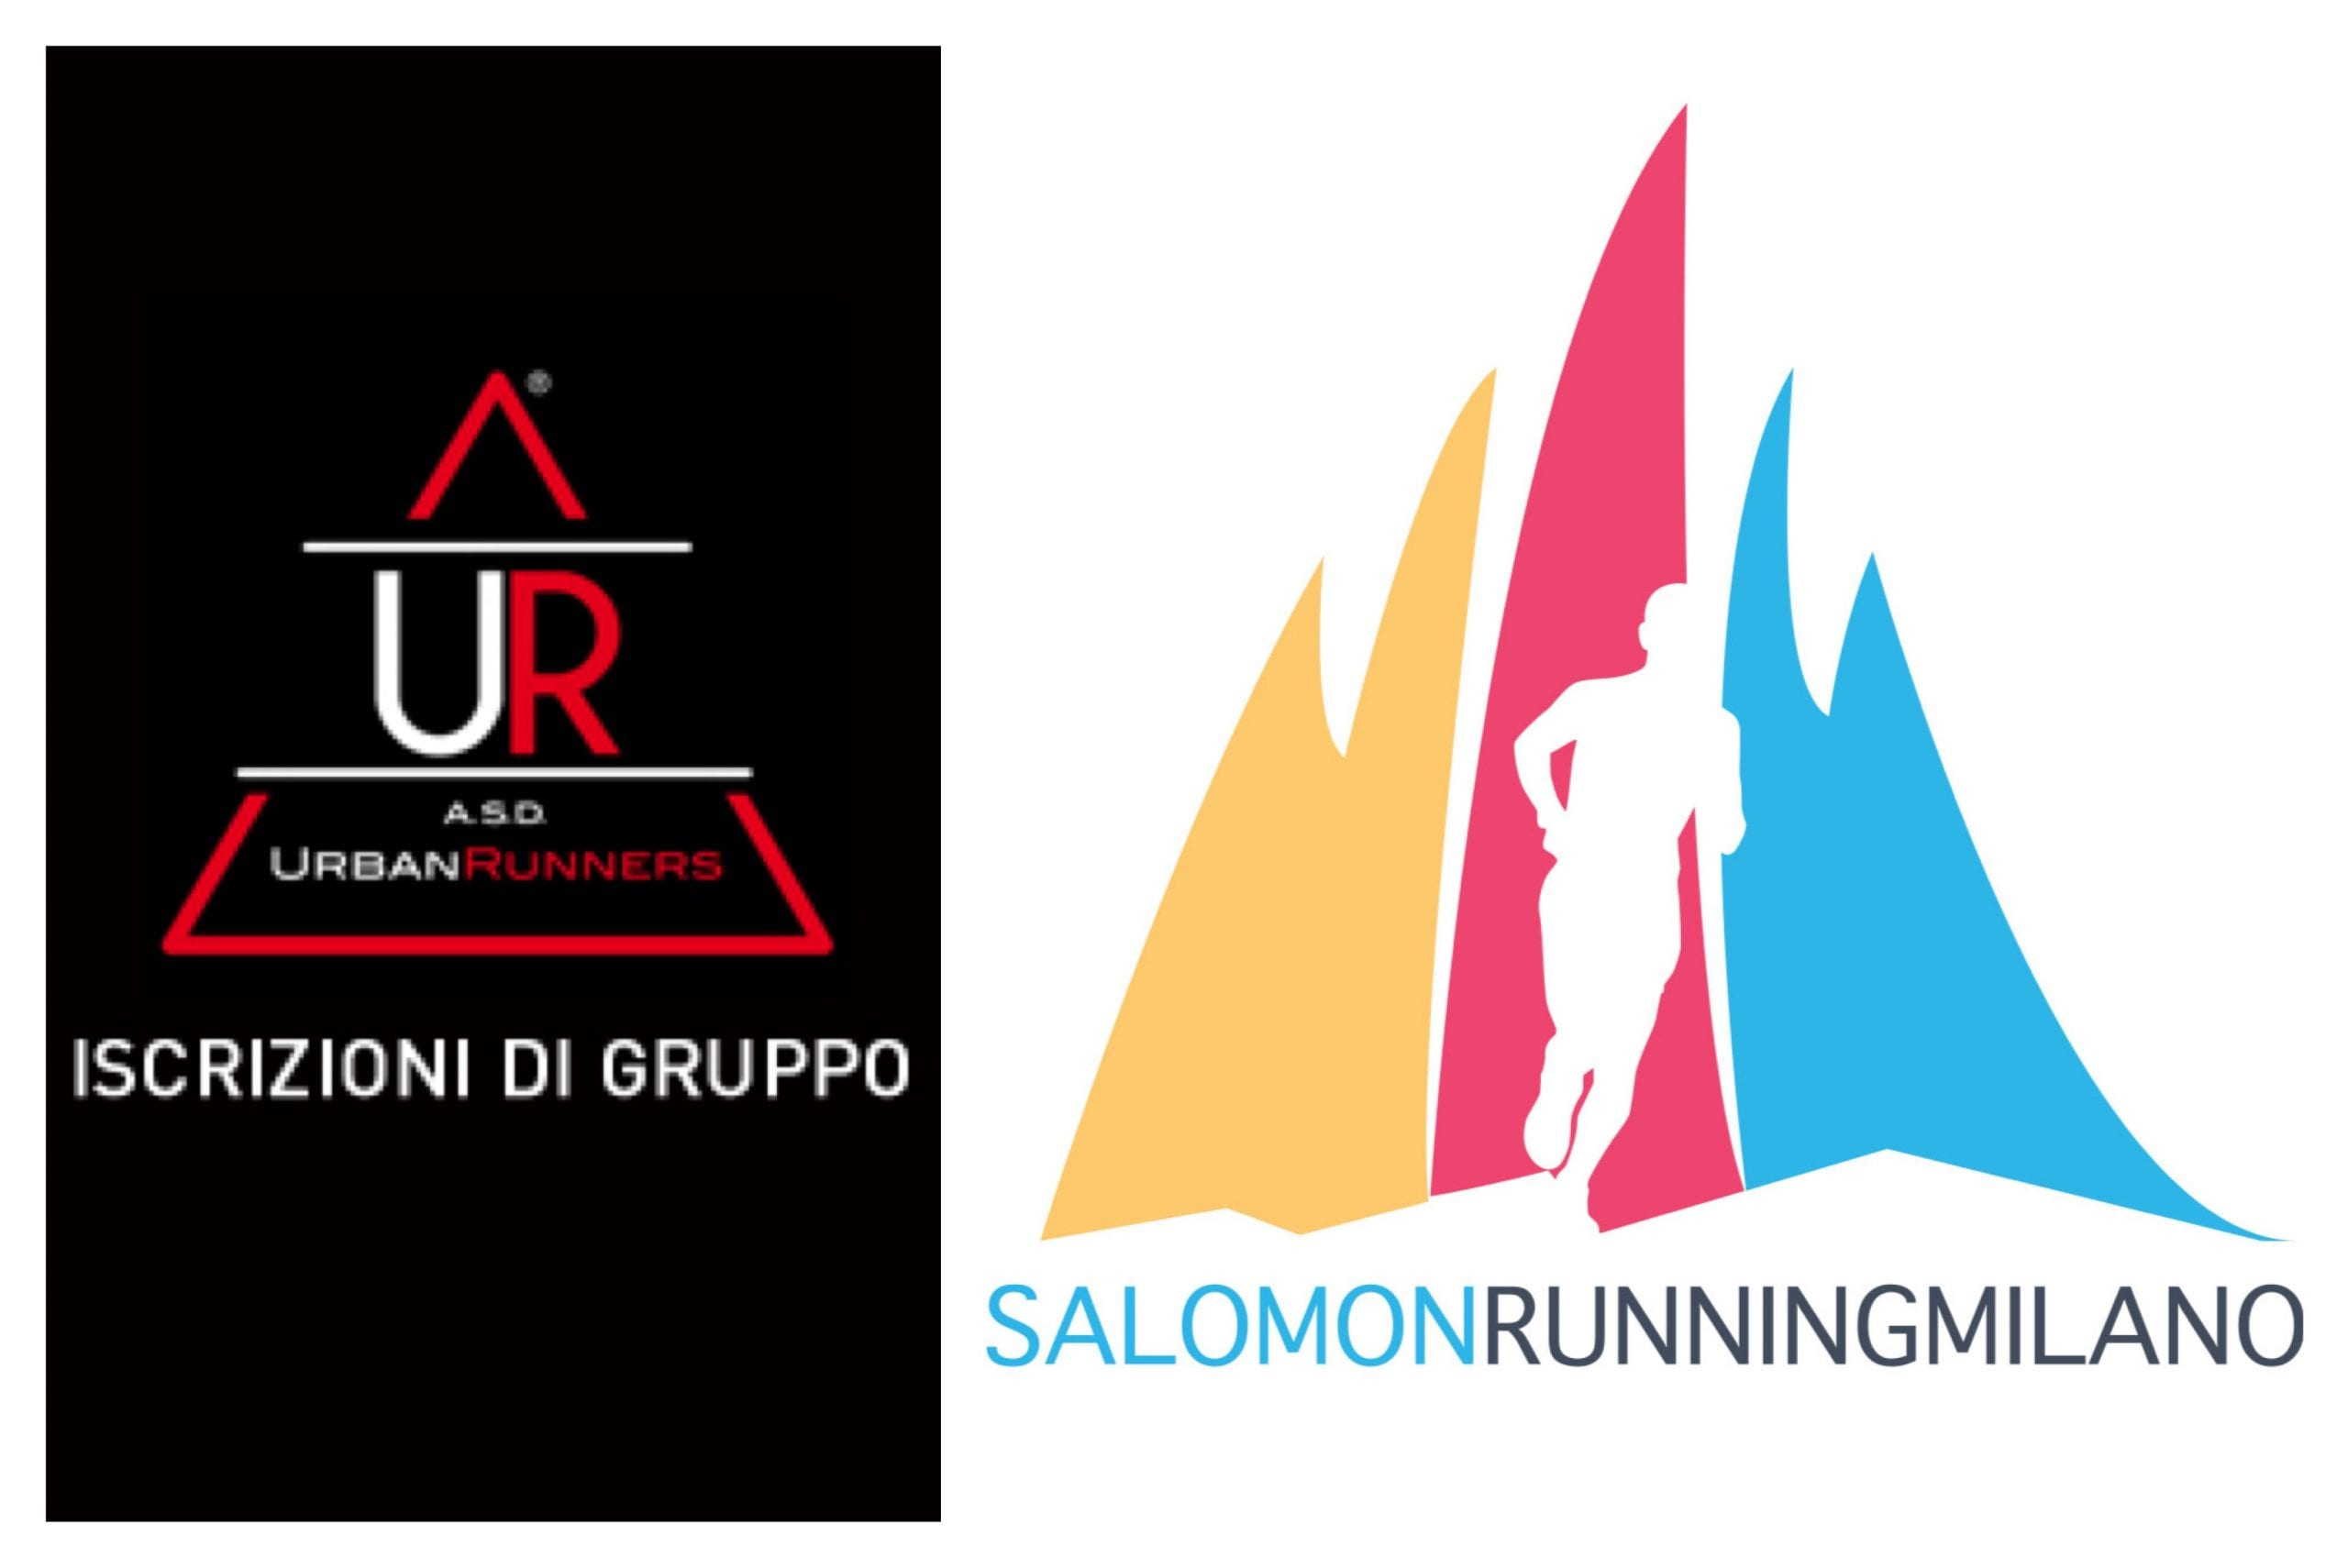 UR alla Salomon Running